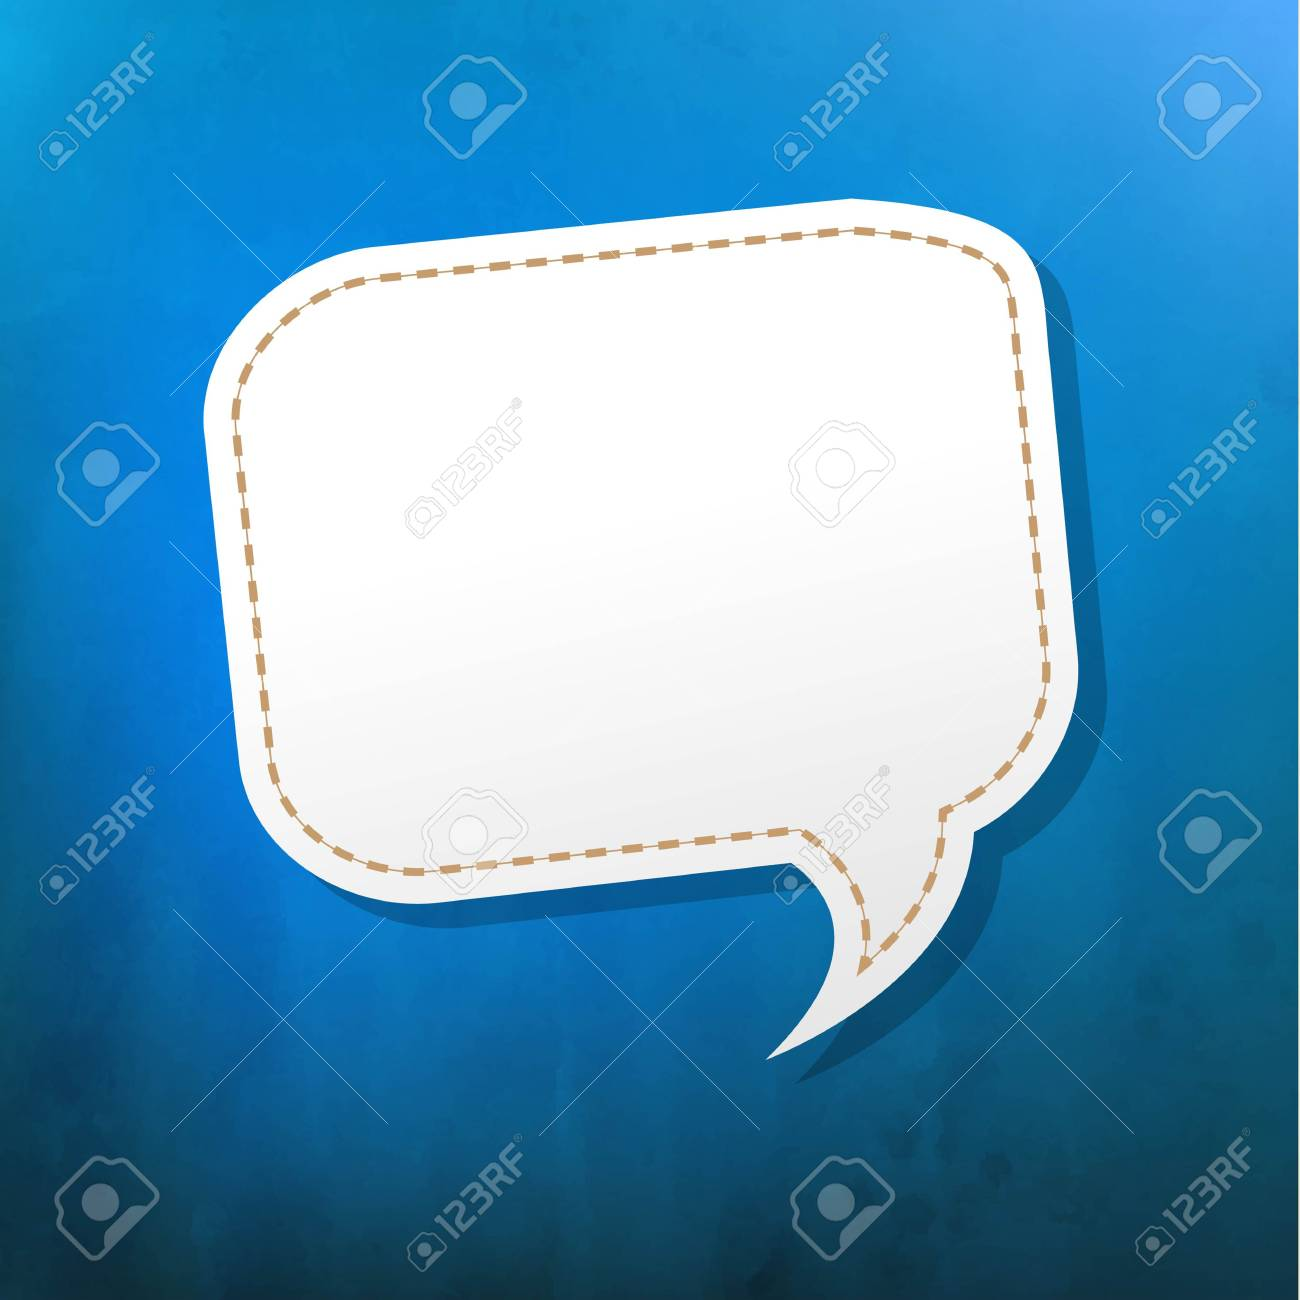 Blue Texture With Speech Bubble With Gradient Mesh, Vector Illustration Stock Vector - 19802577